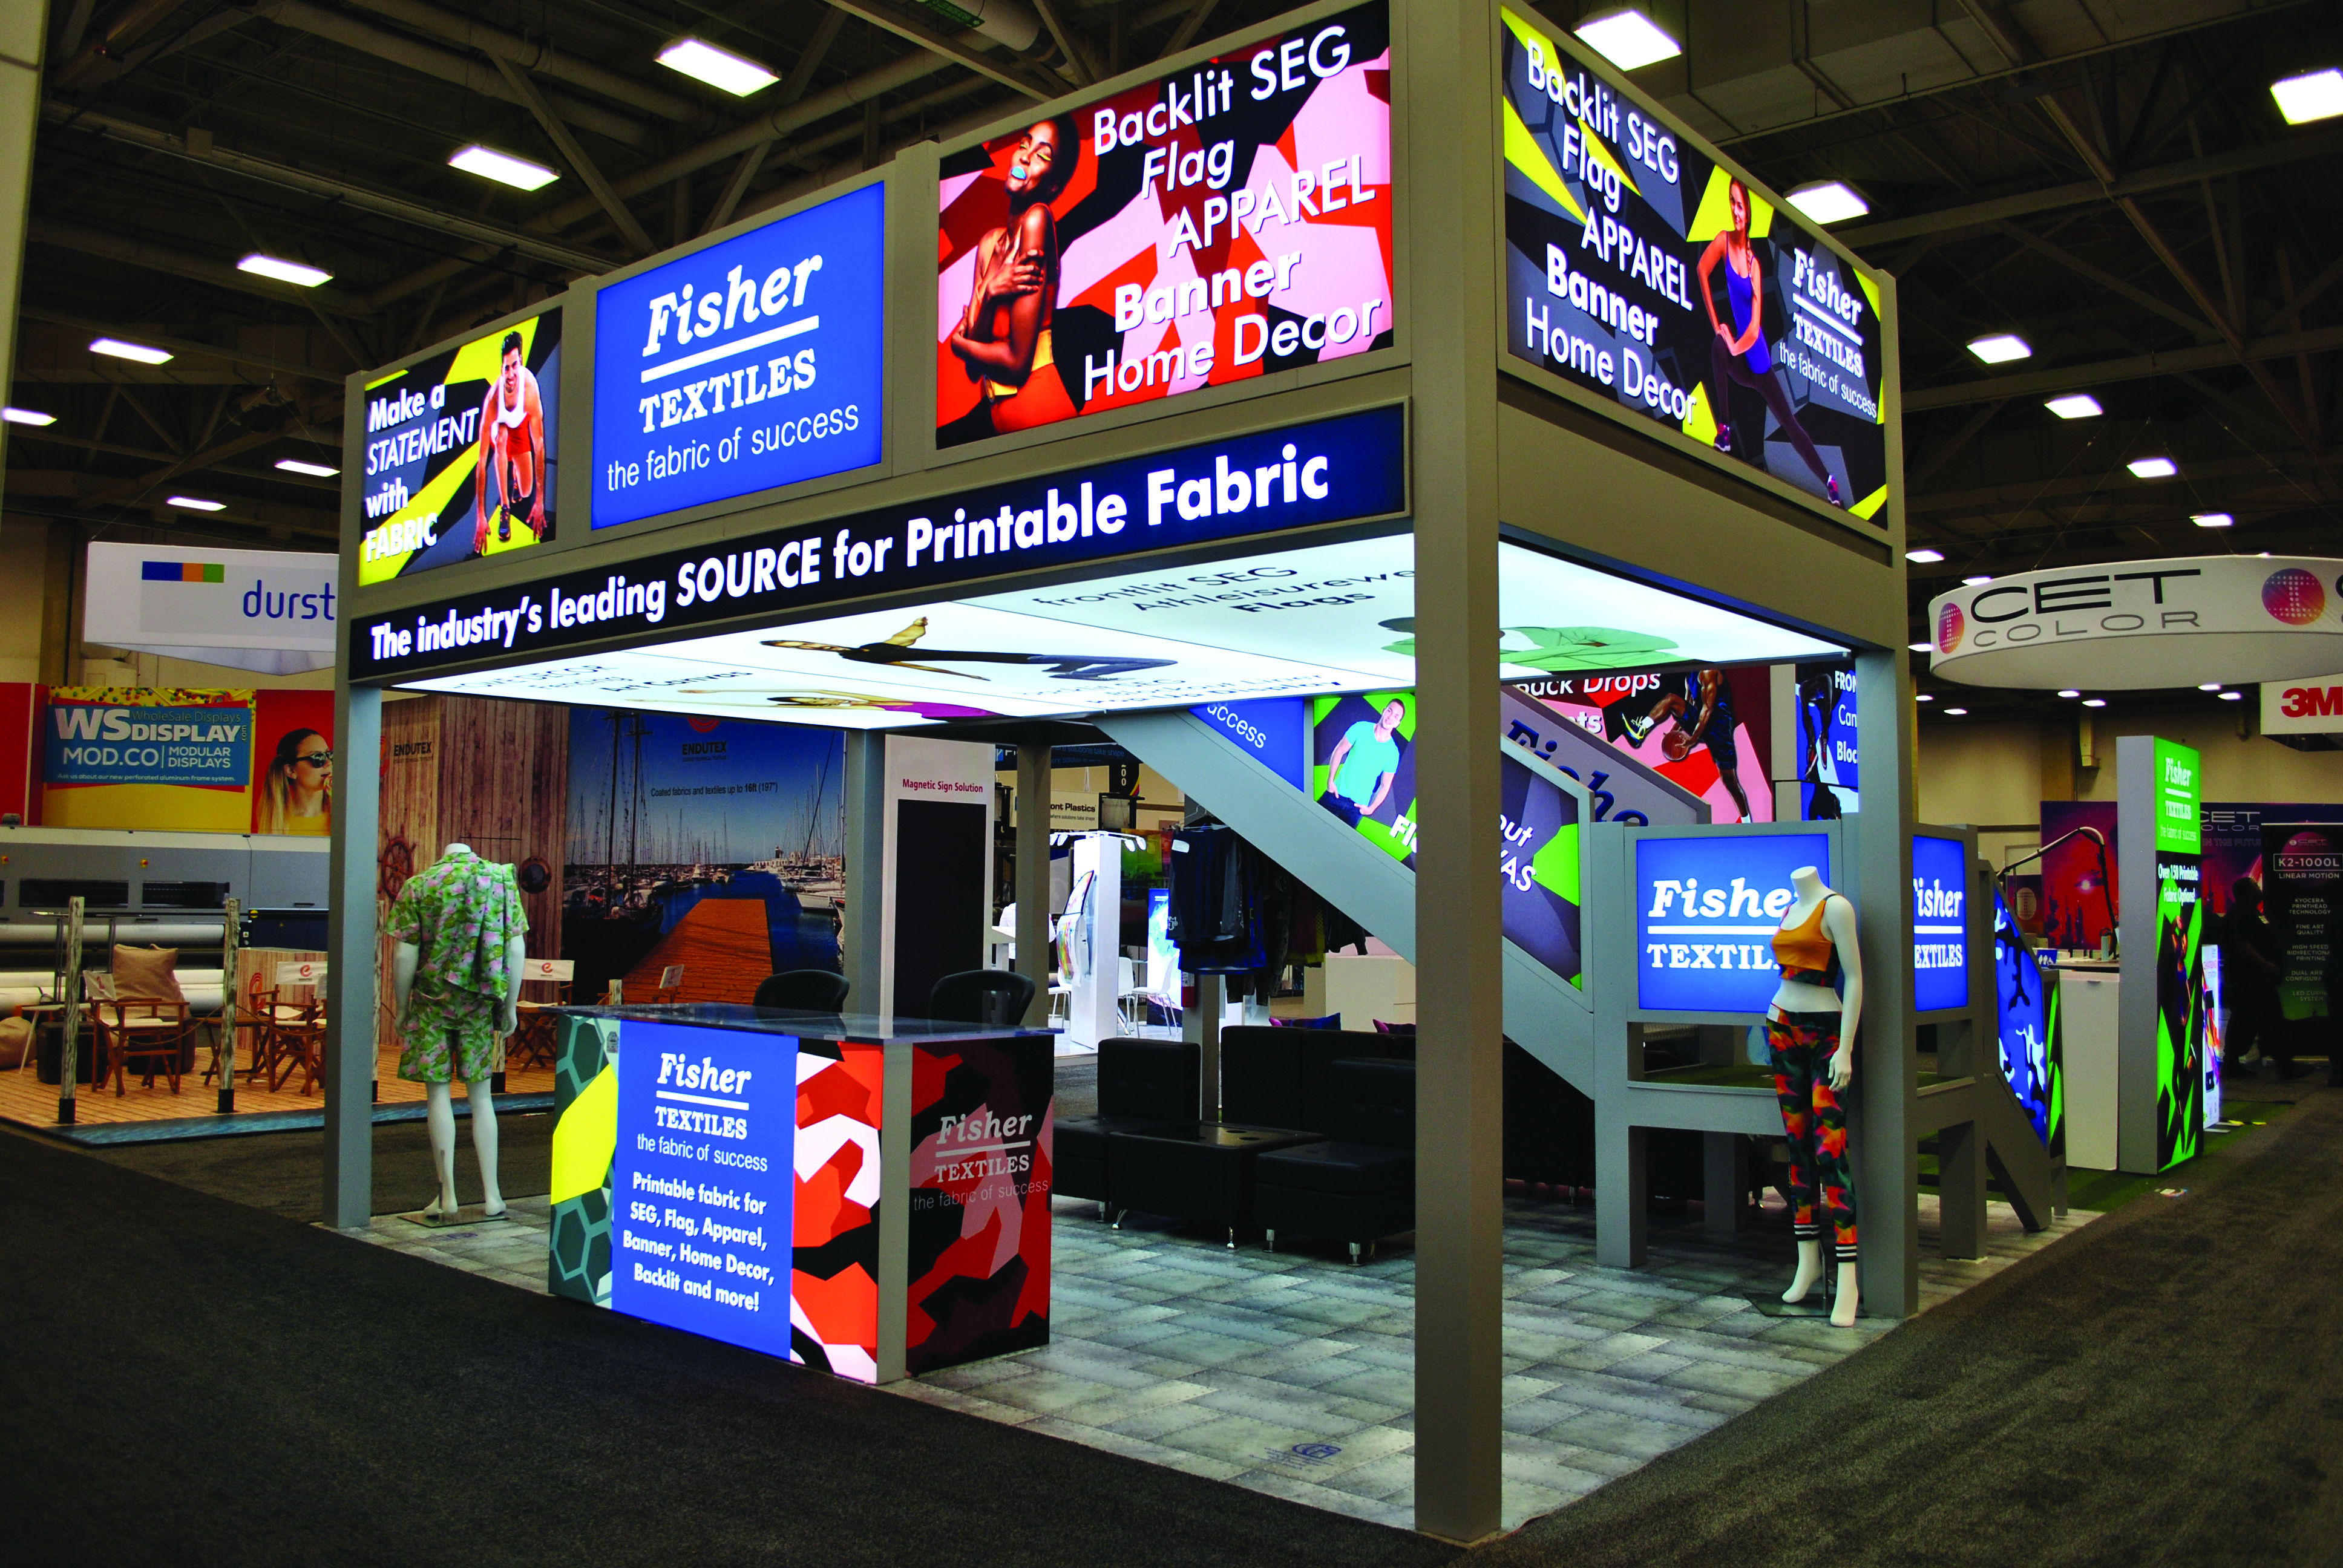 Digital textiles make installation easy for in-store personnel.